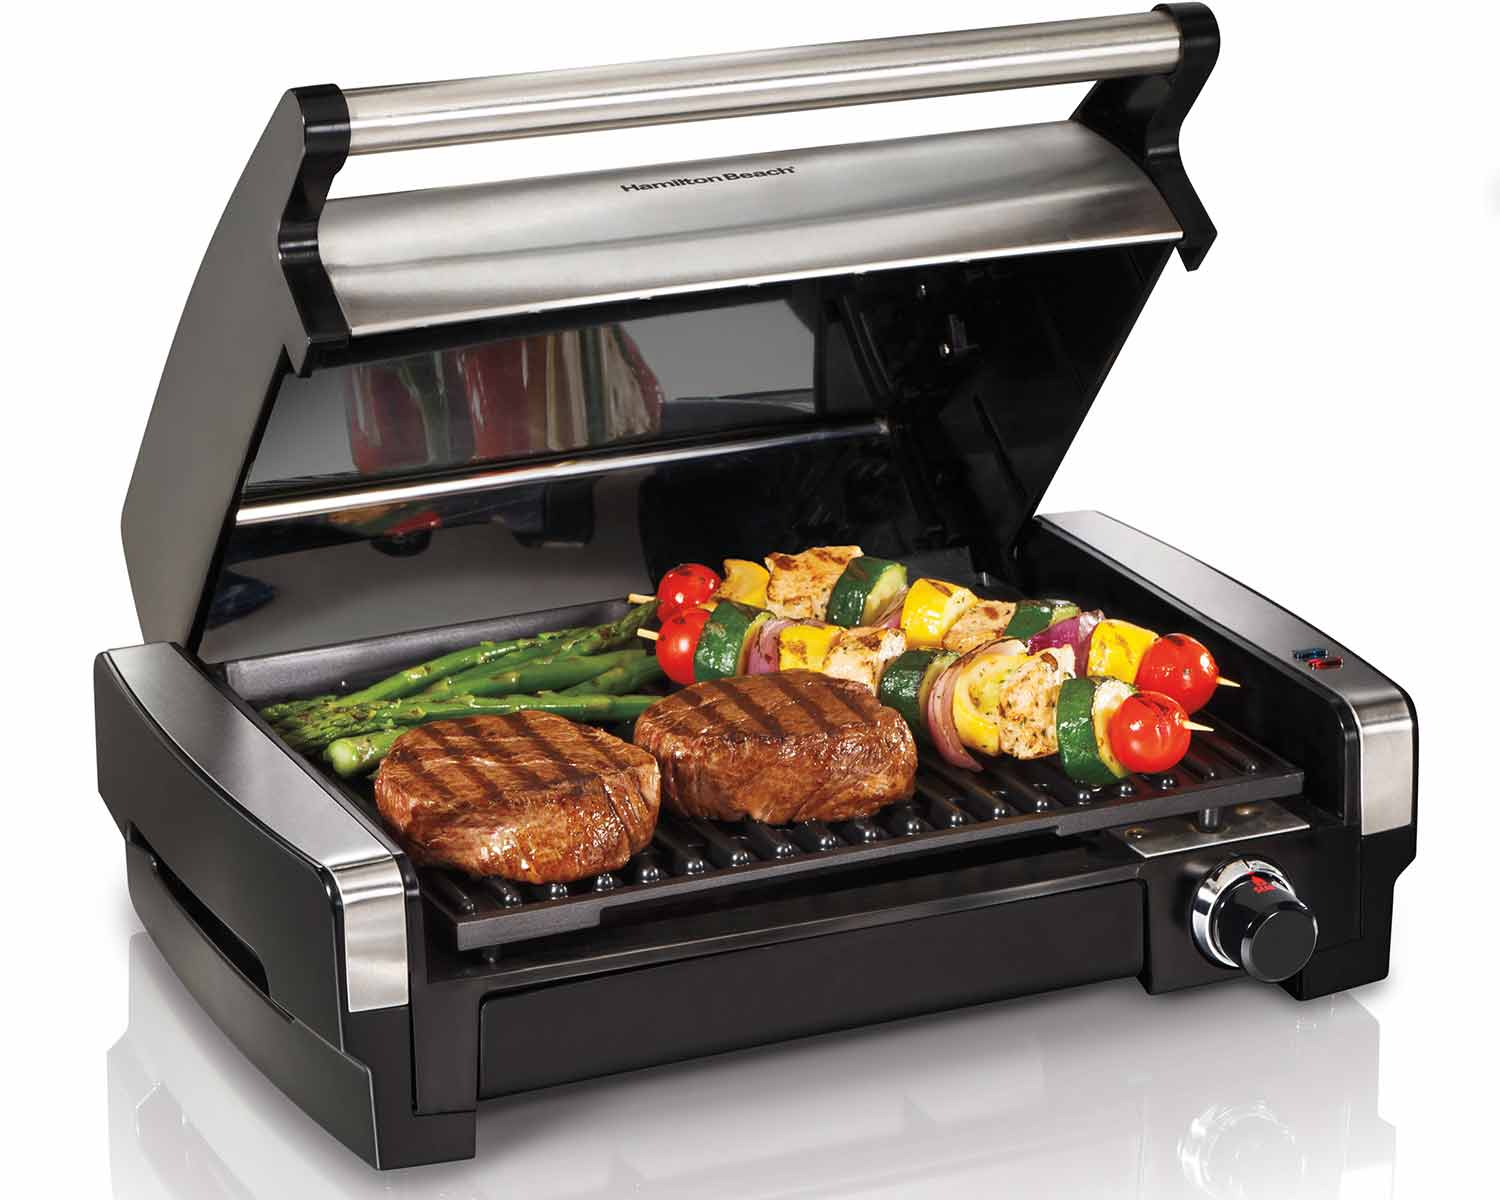 Searing Grill with Removable Plates (25360C)